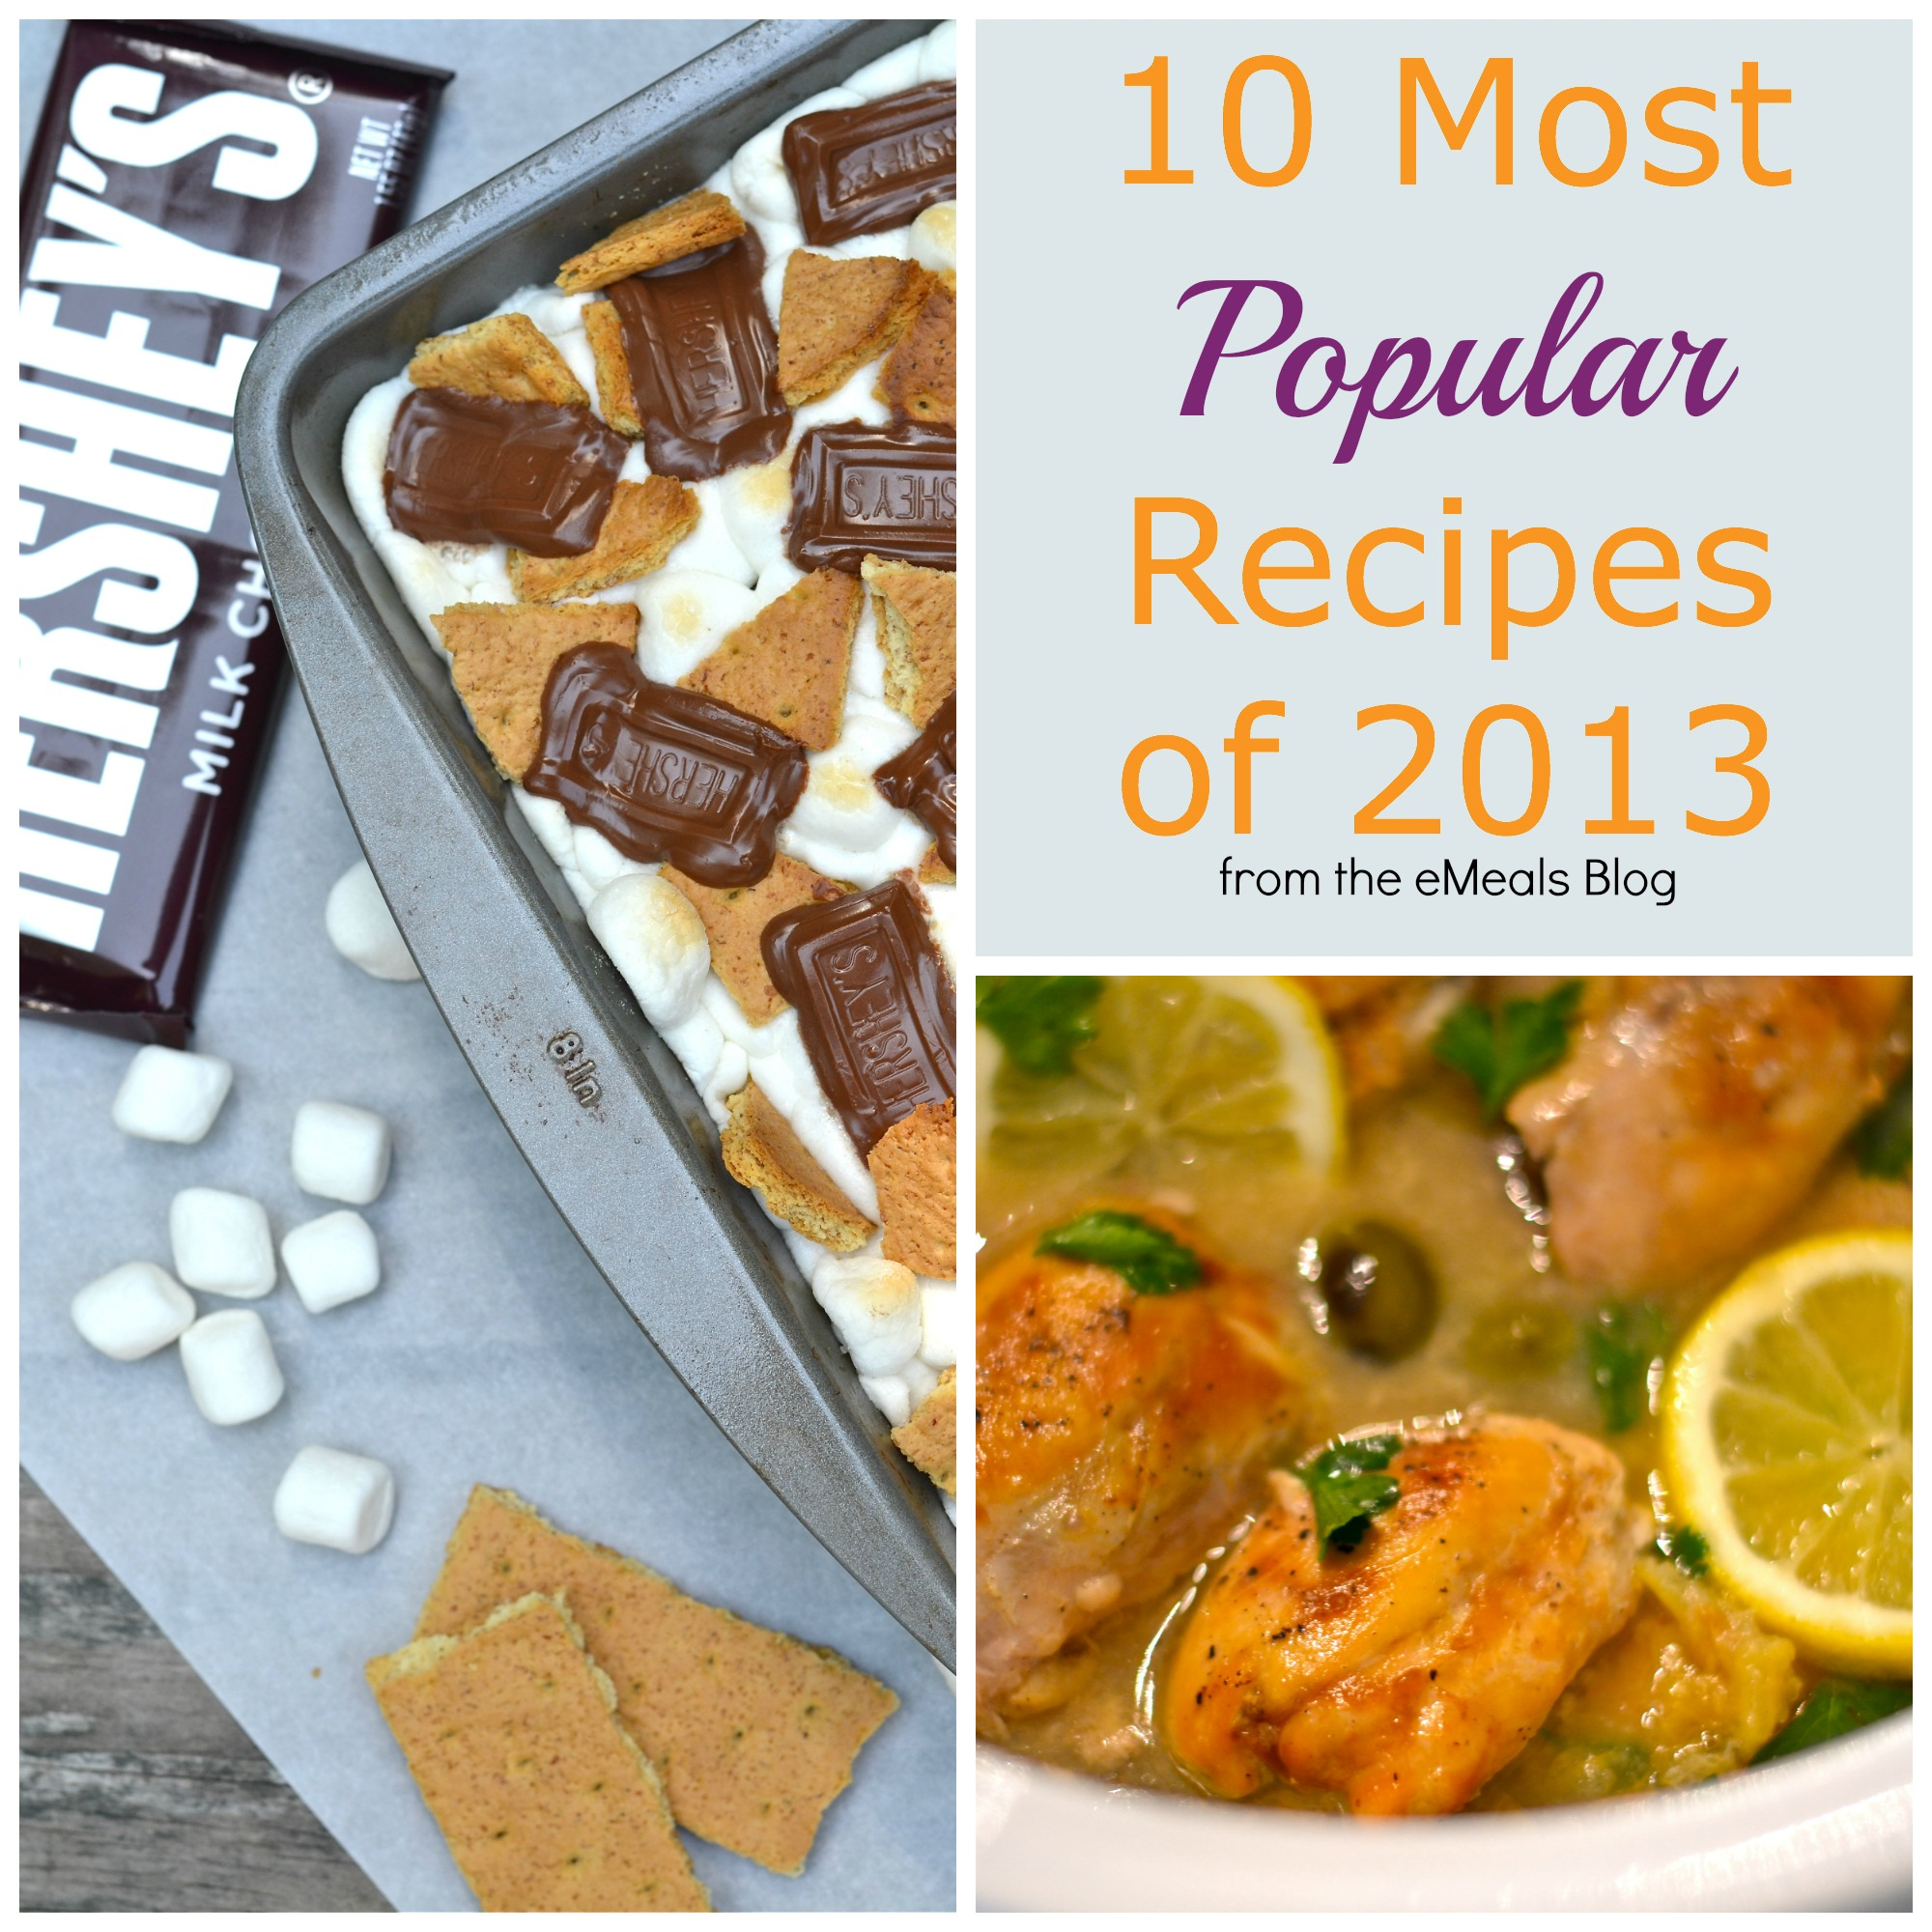 10 Most Popular Recipes in 2013